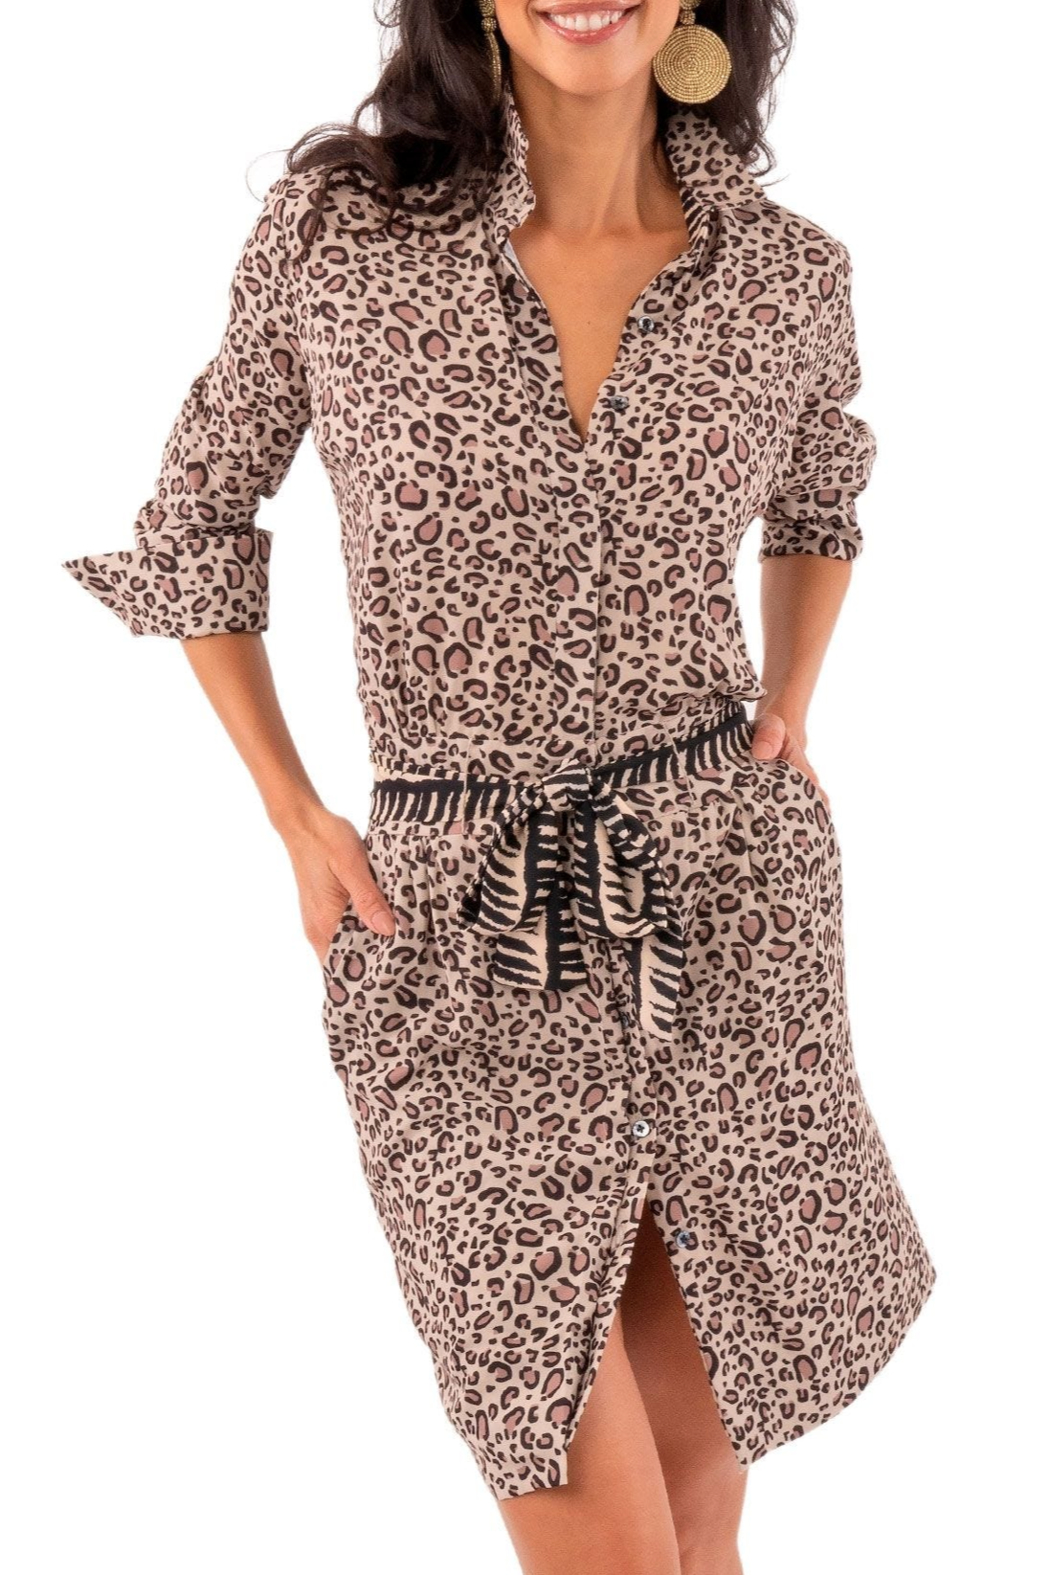 Gretchen Scott Breezy Blouson Dress - Front Cropped Image